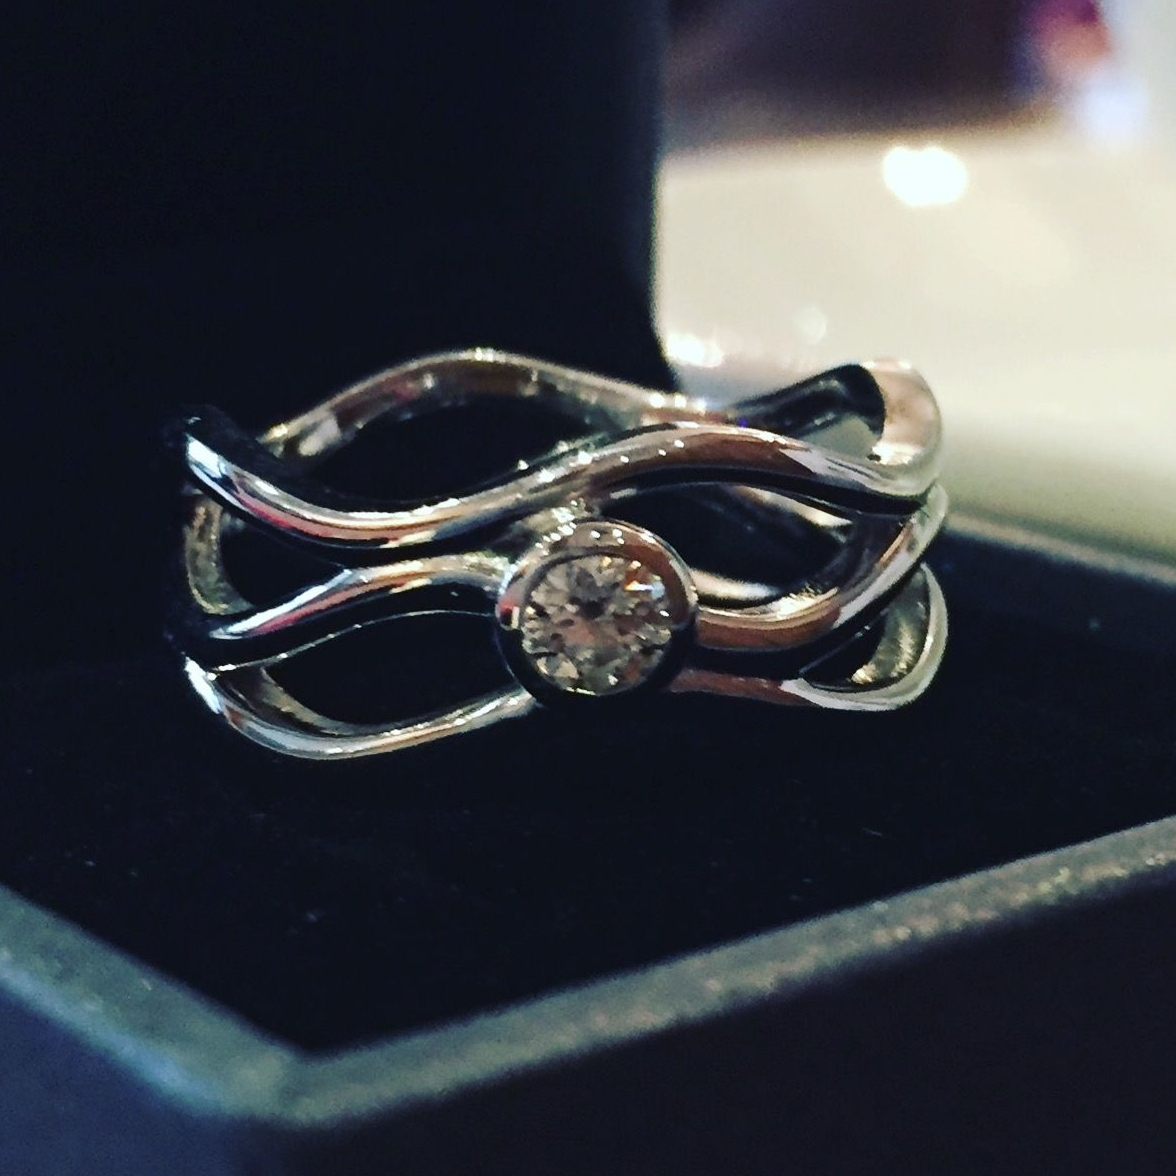 Felicity's bespoke engagement ring